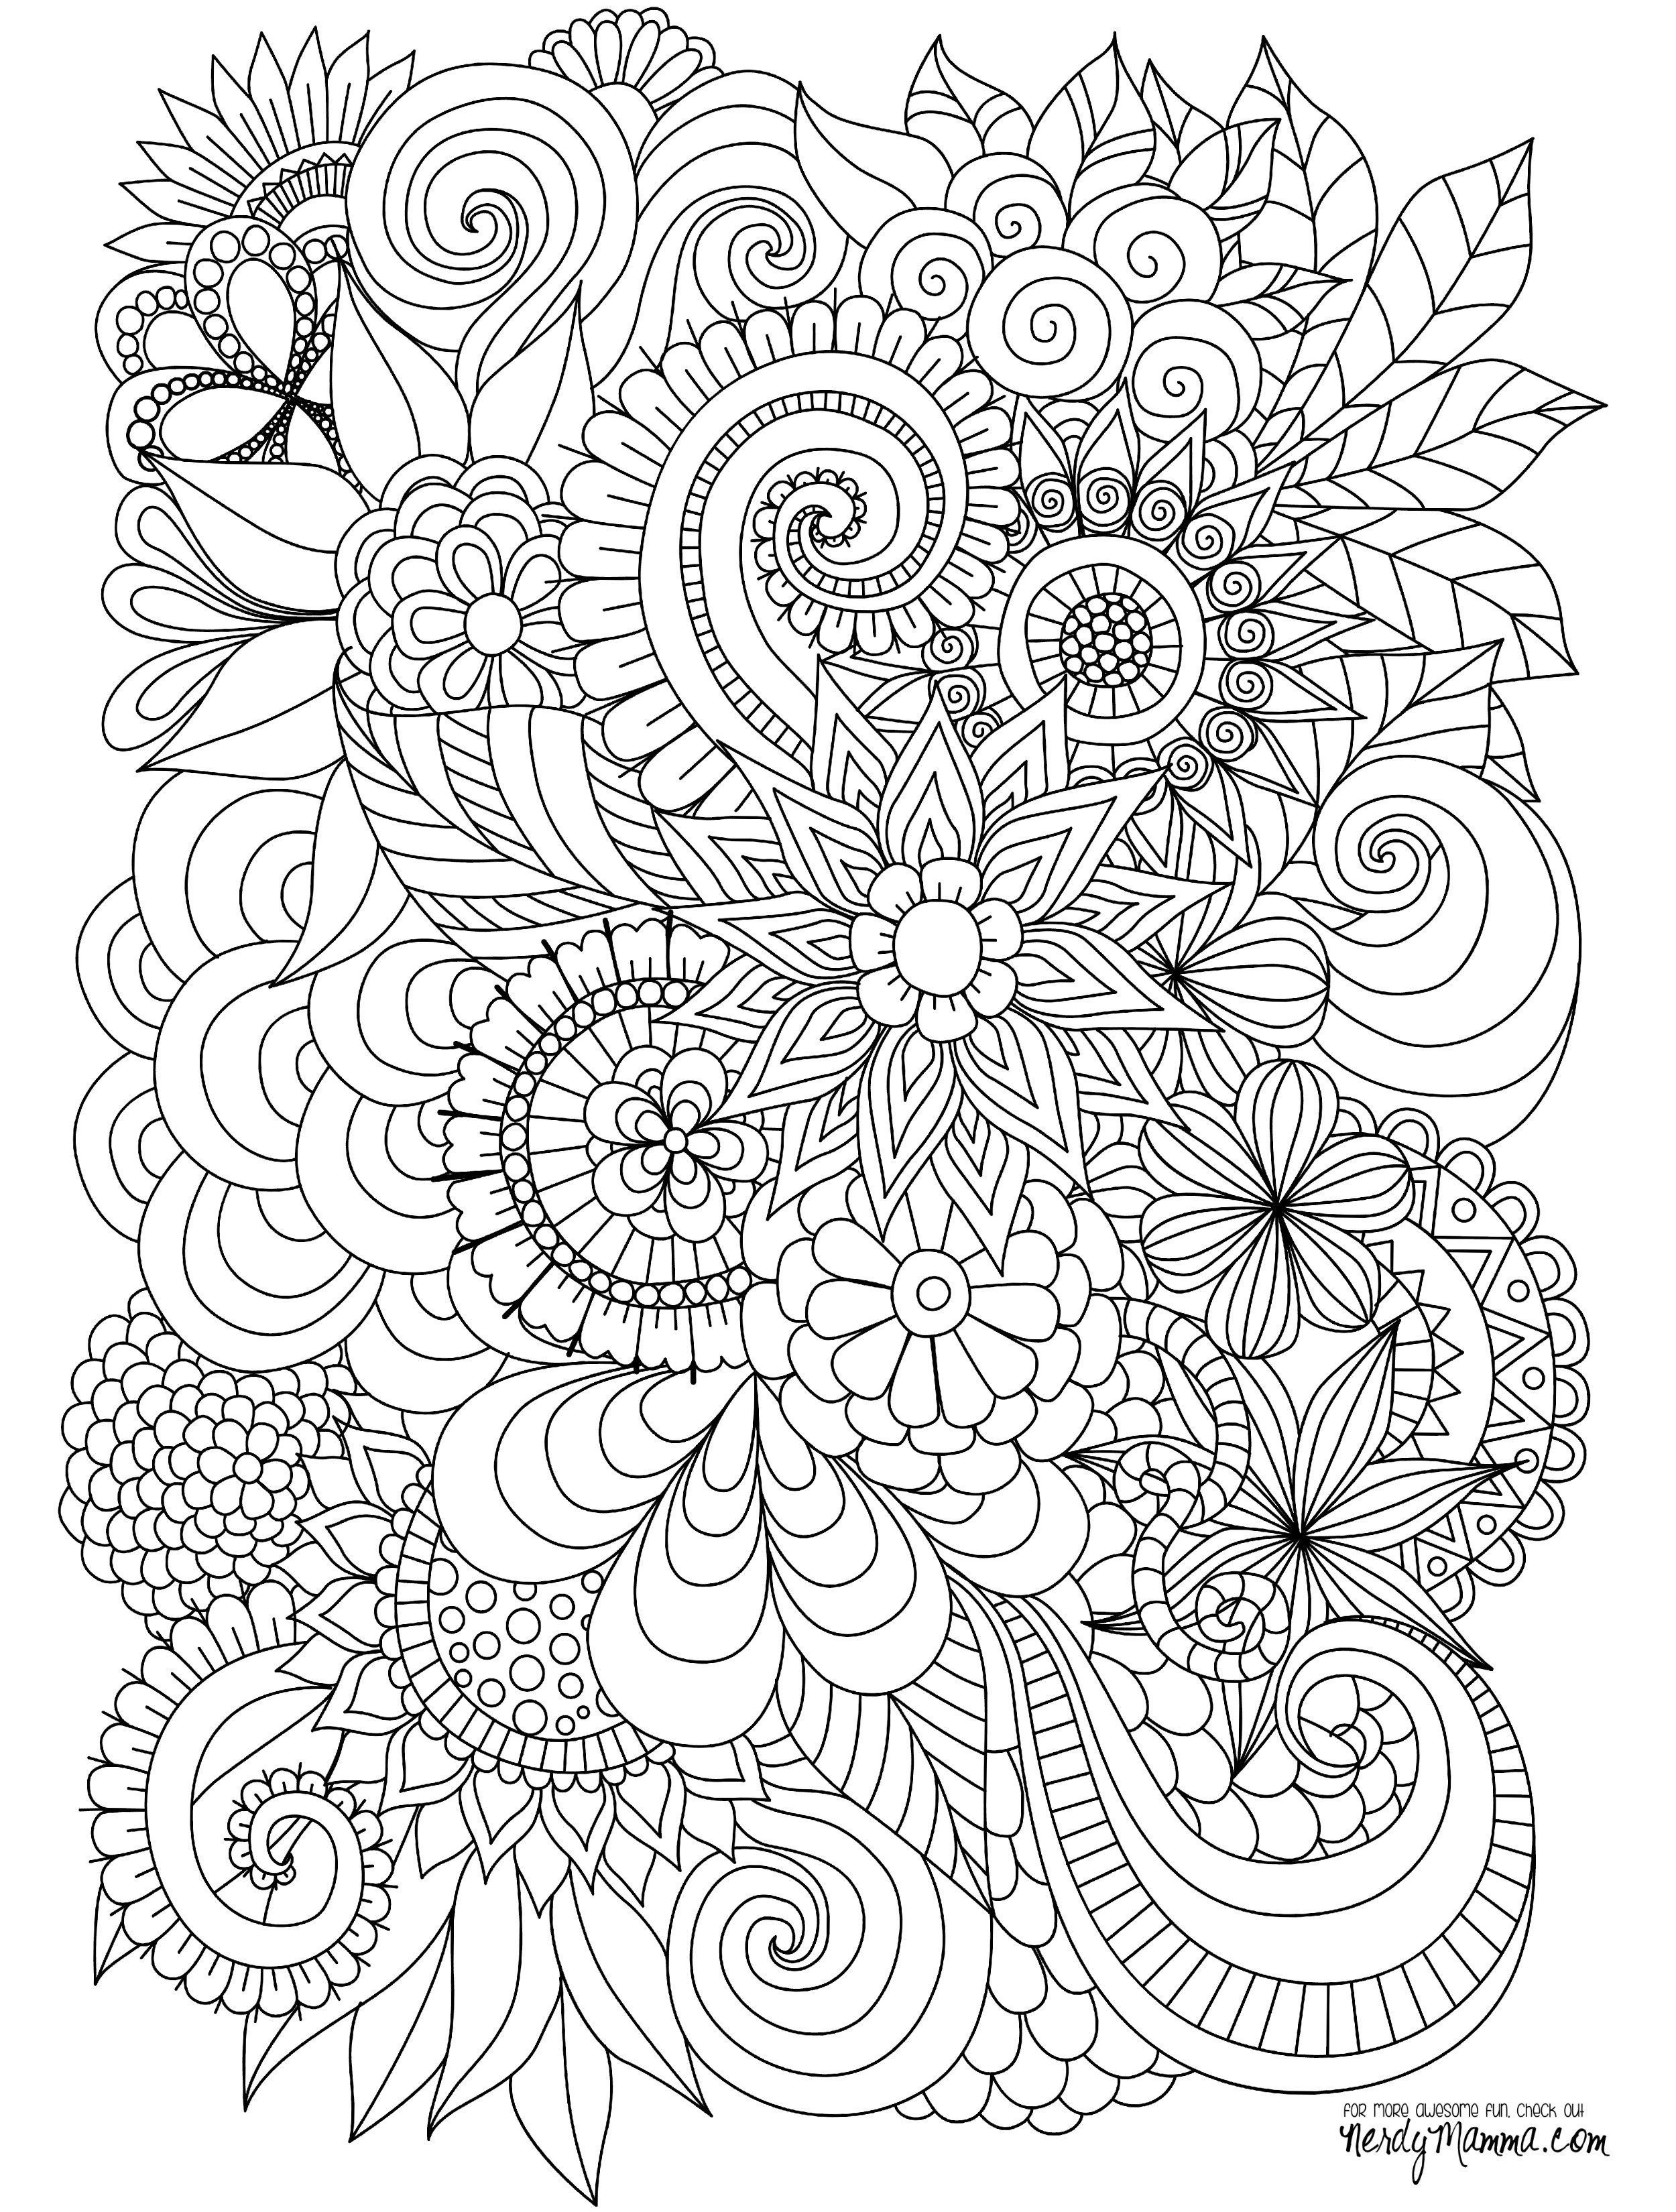 20 Fantasy Coloring Pages Gallery Coloring Sheets